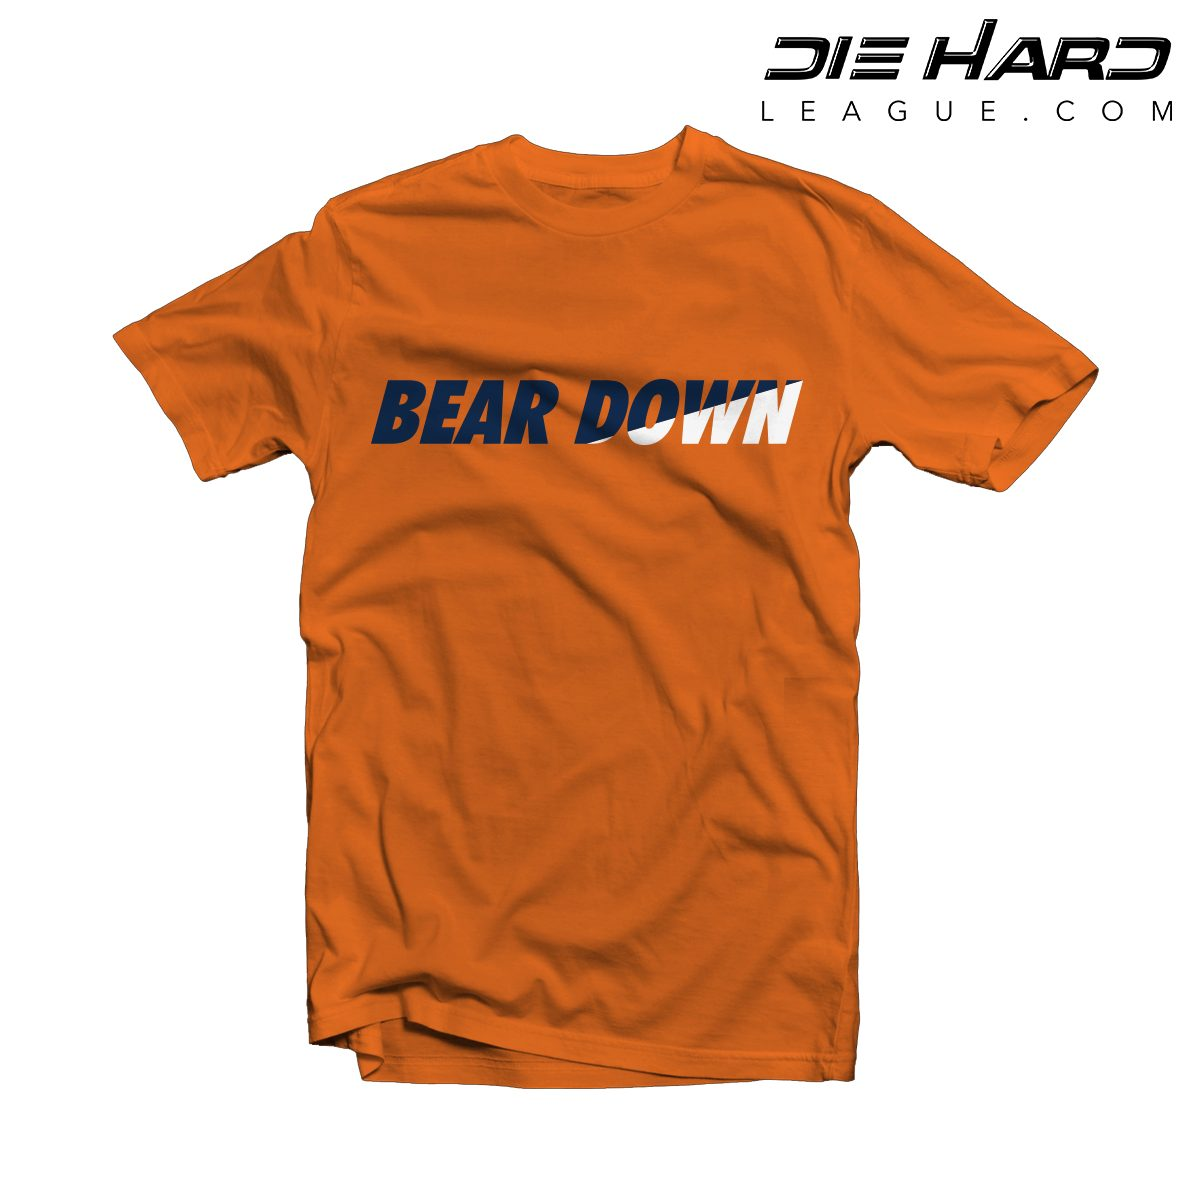 various colors 152cf 24f0c Chicago Bears T Shirts - Bear Down Orange Tee [Best Selling]